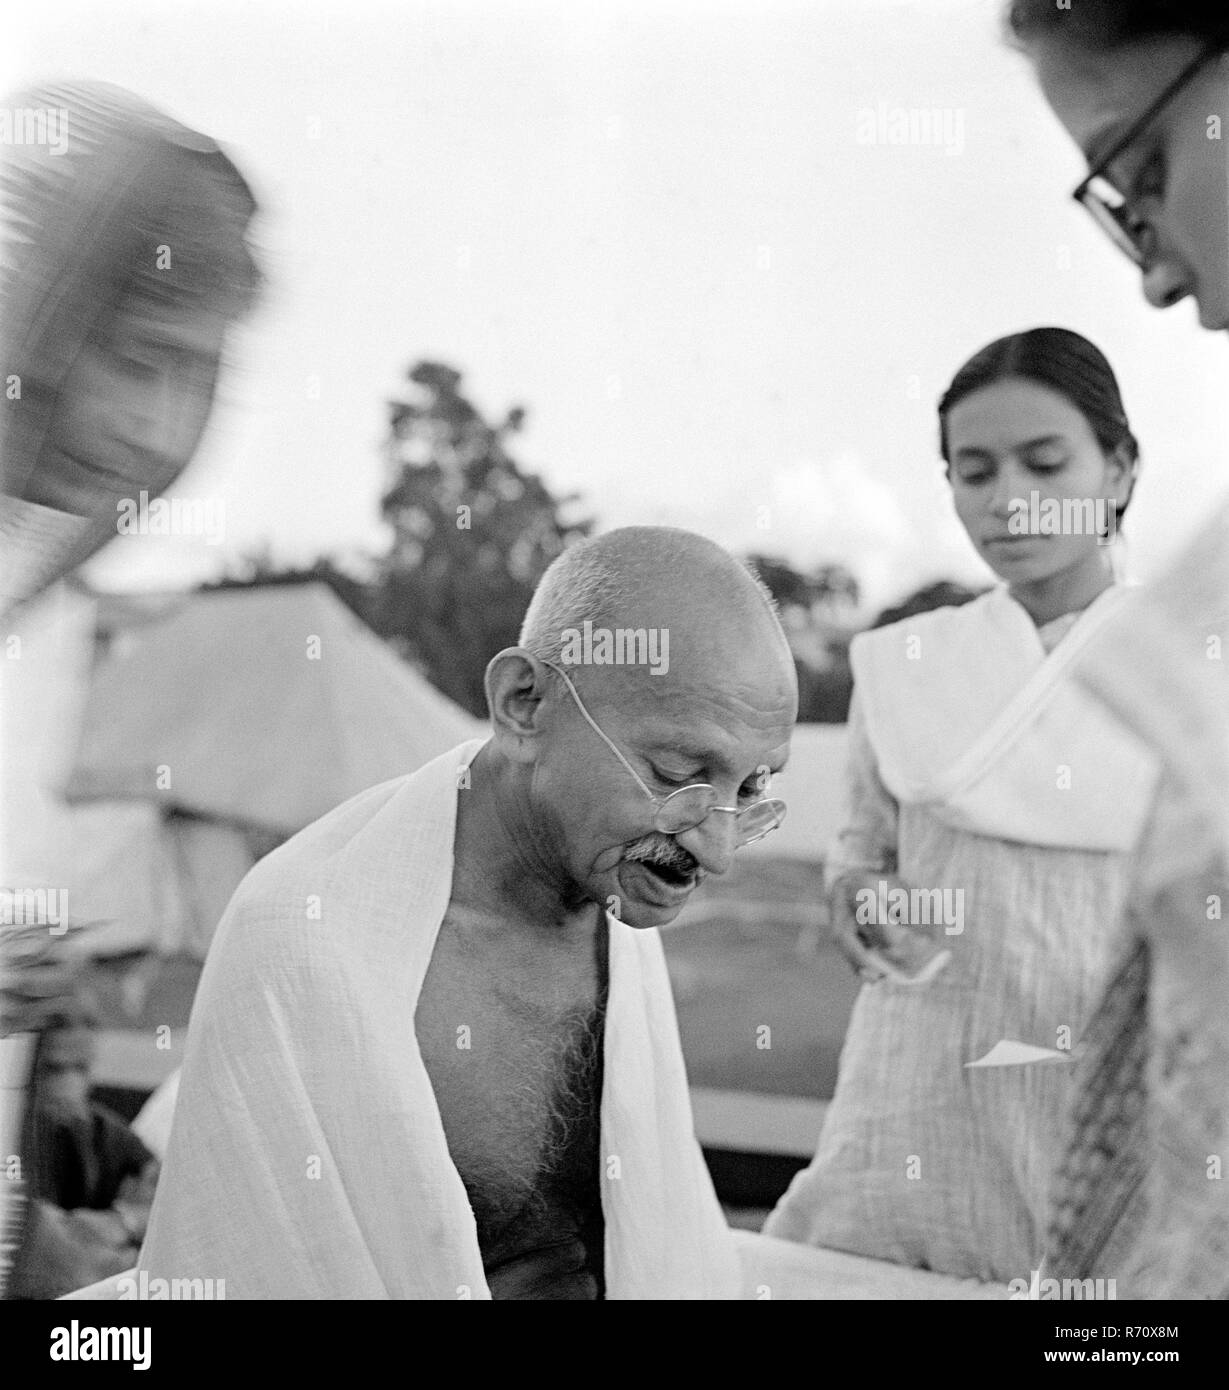 Mahatma Gandhi giving an autograph on his 75th birthday at Pune, Maharashtra, India, October 2, 1944 - MODEL RELEASE NOT AVAILABLE - Stock Image